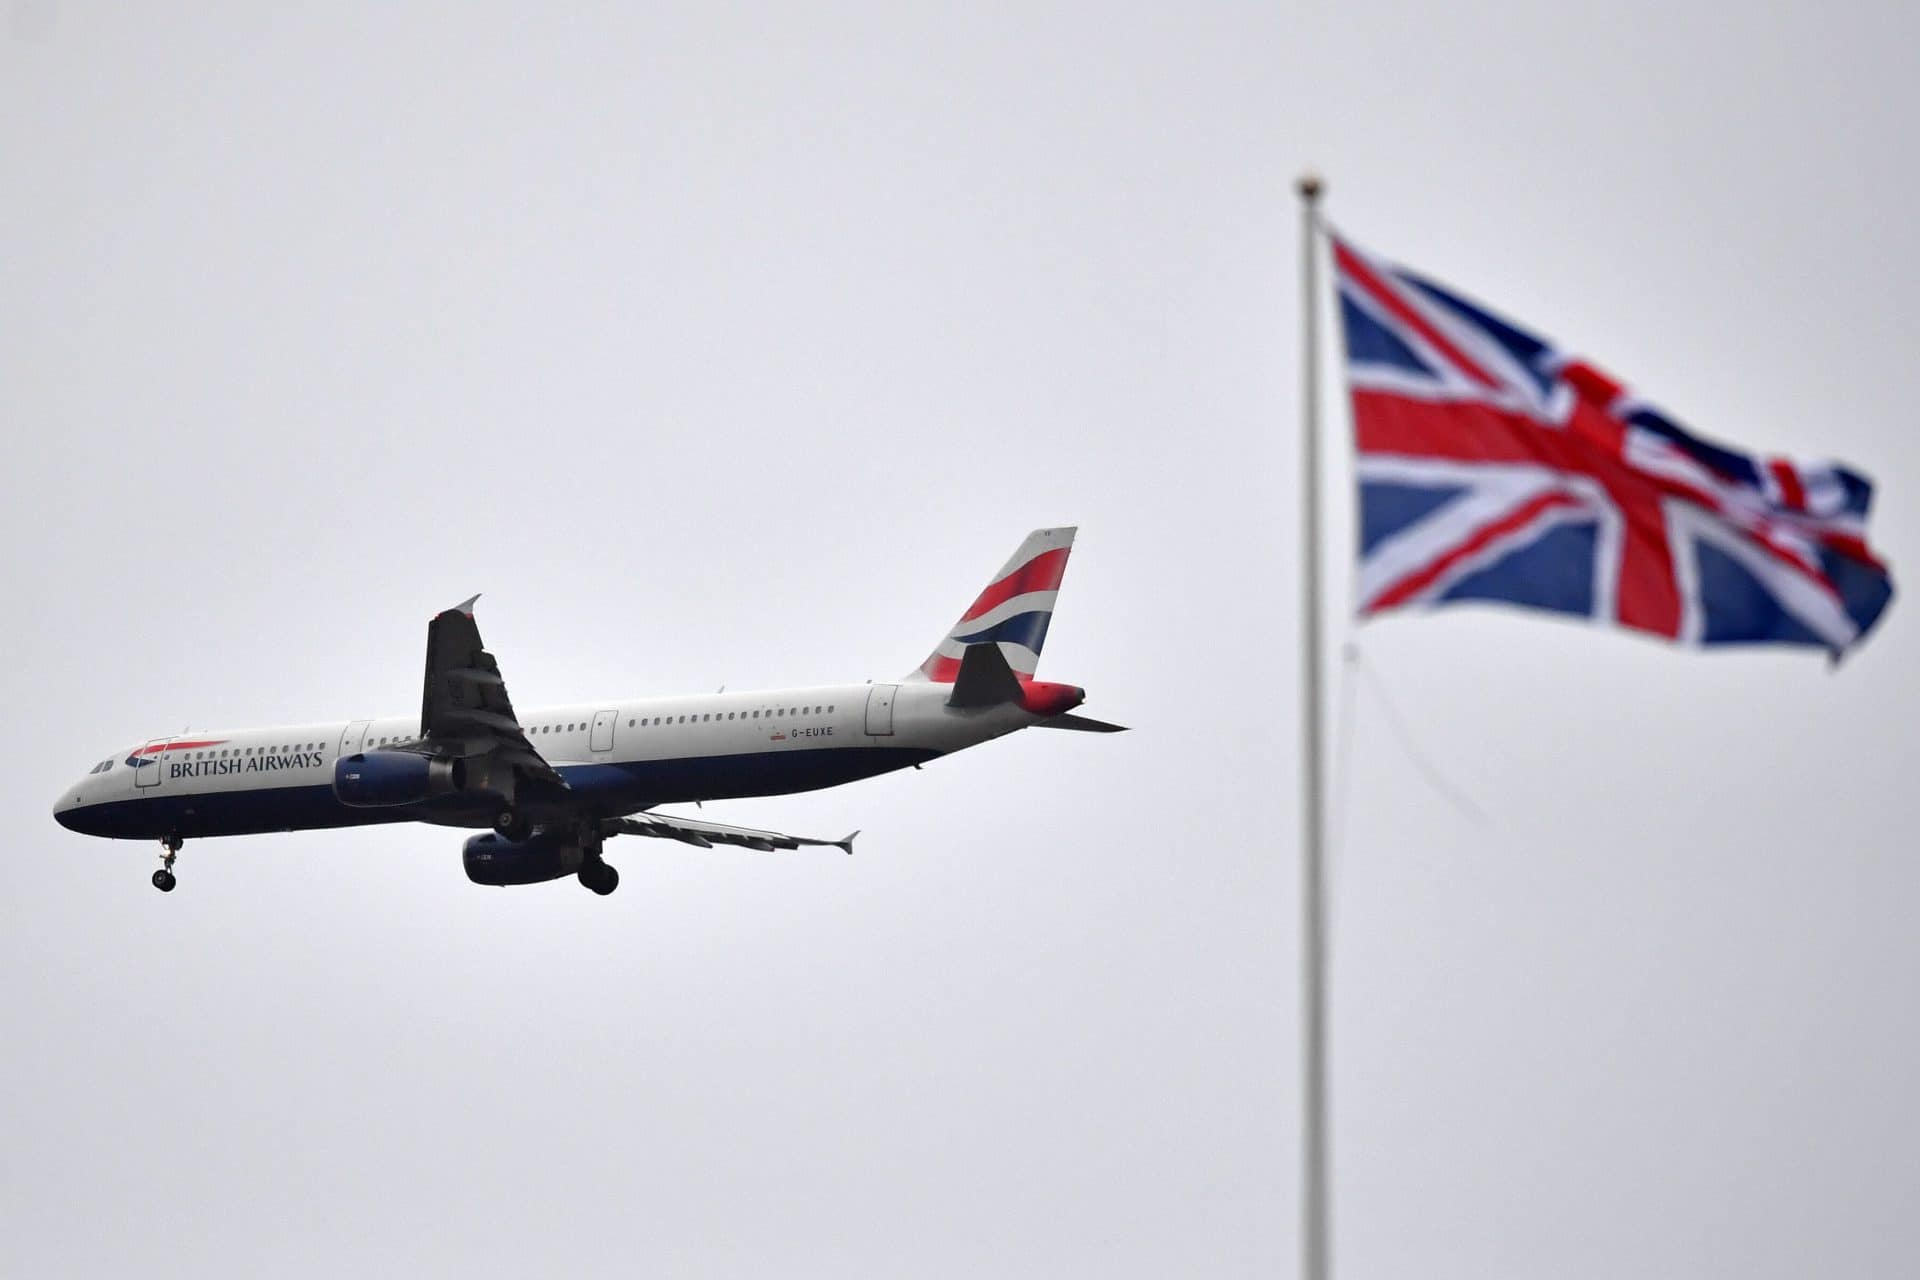 Furto dati passeggeri: British Airways multata di 183 milioni di sterline